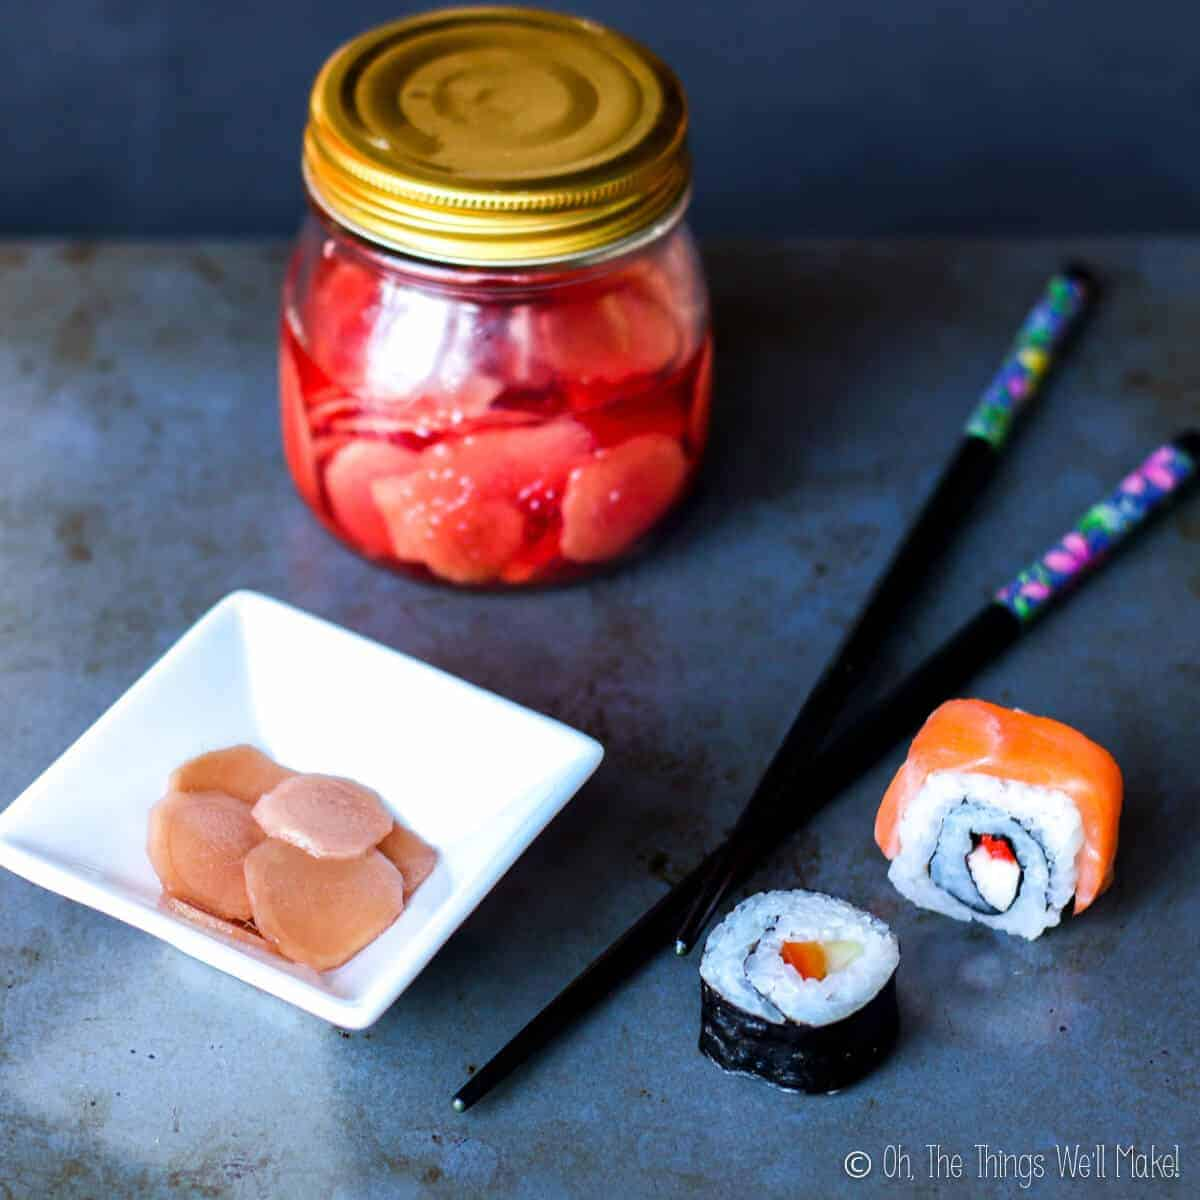 A jar of homemade pickled ginger for sushi next to some sushi and chopsticks